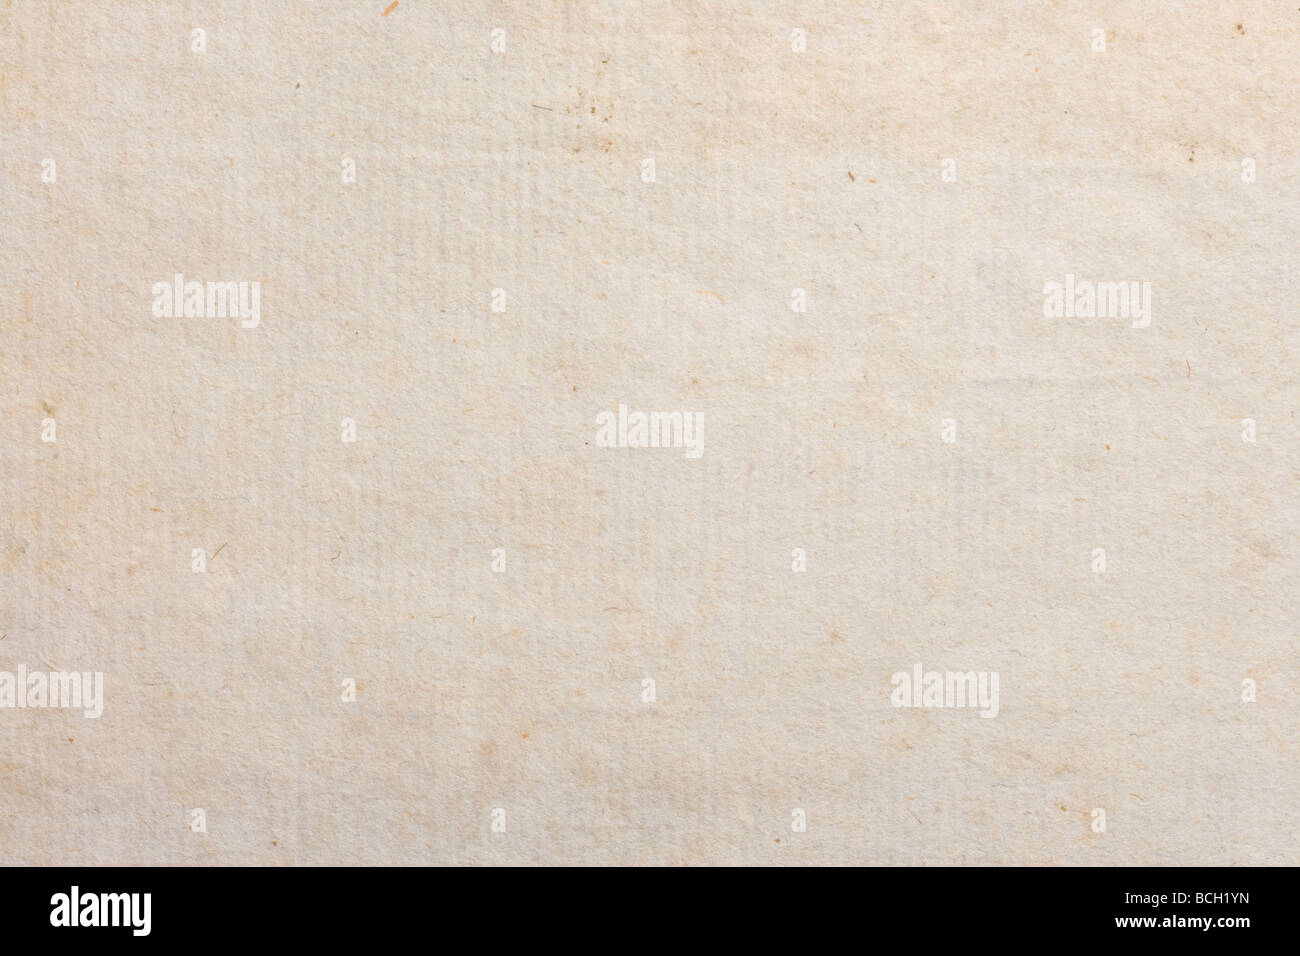 Antique Paper with texture from 1700 s close up - Stock Image